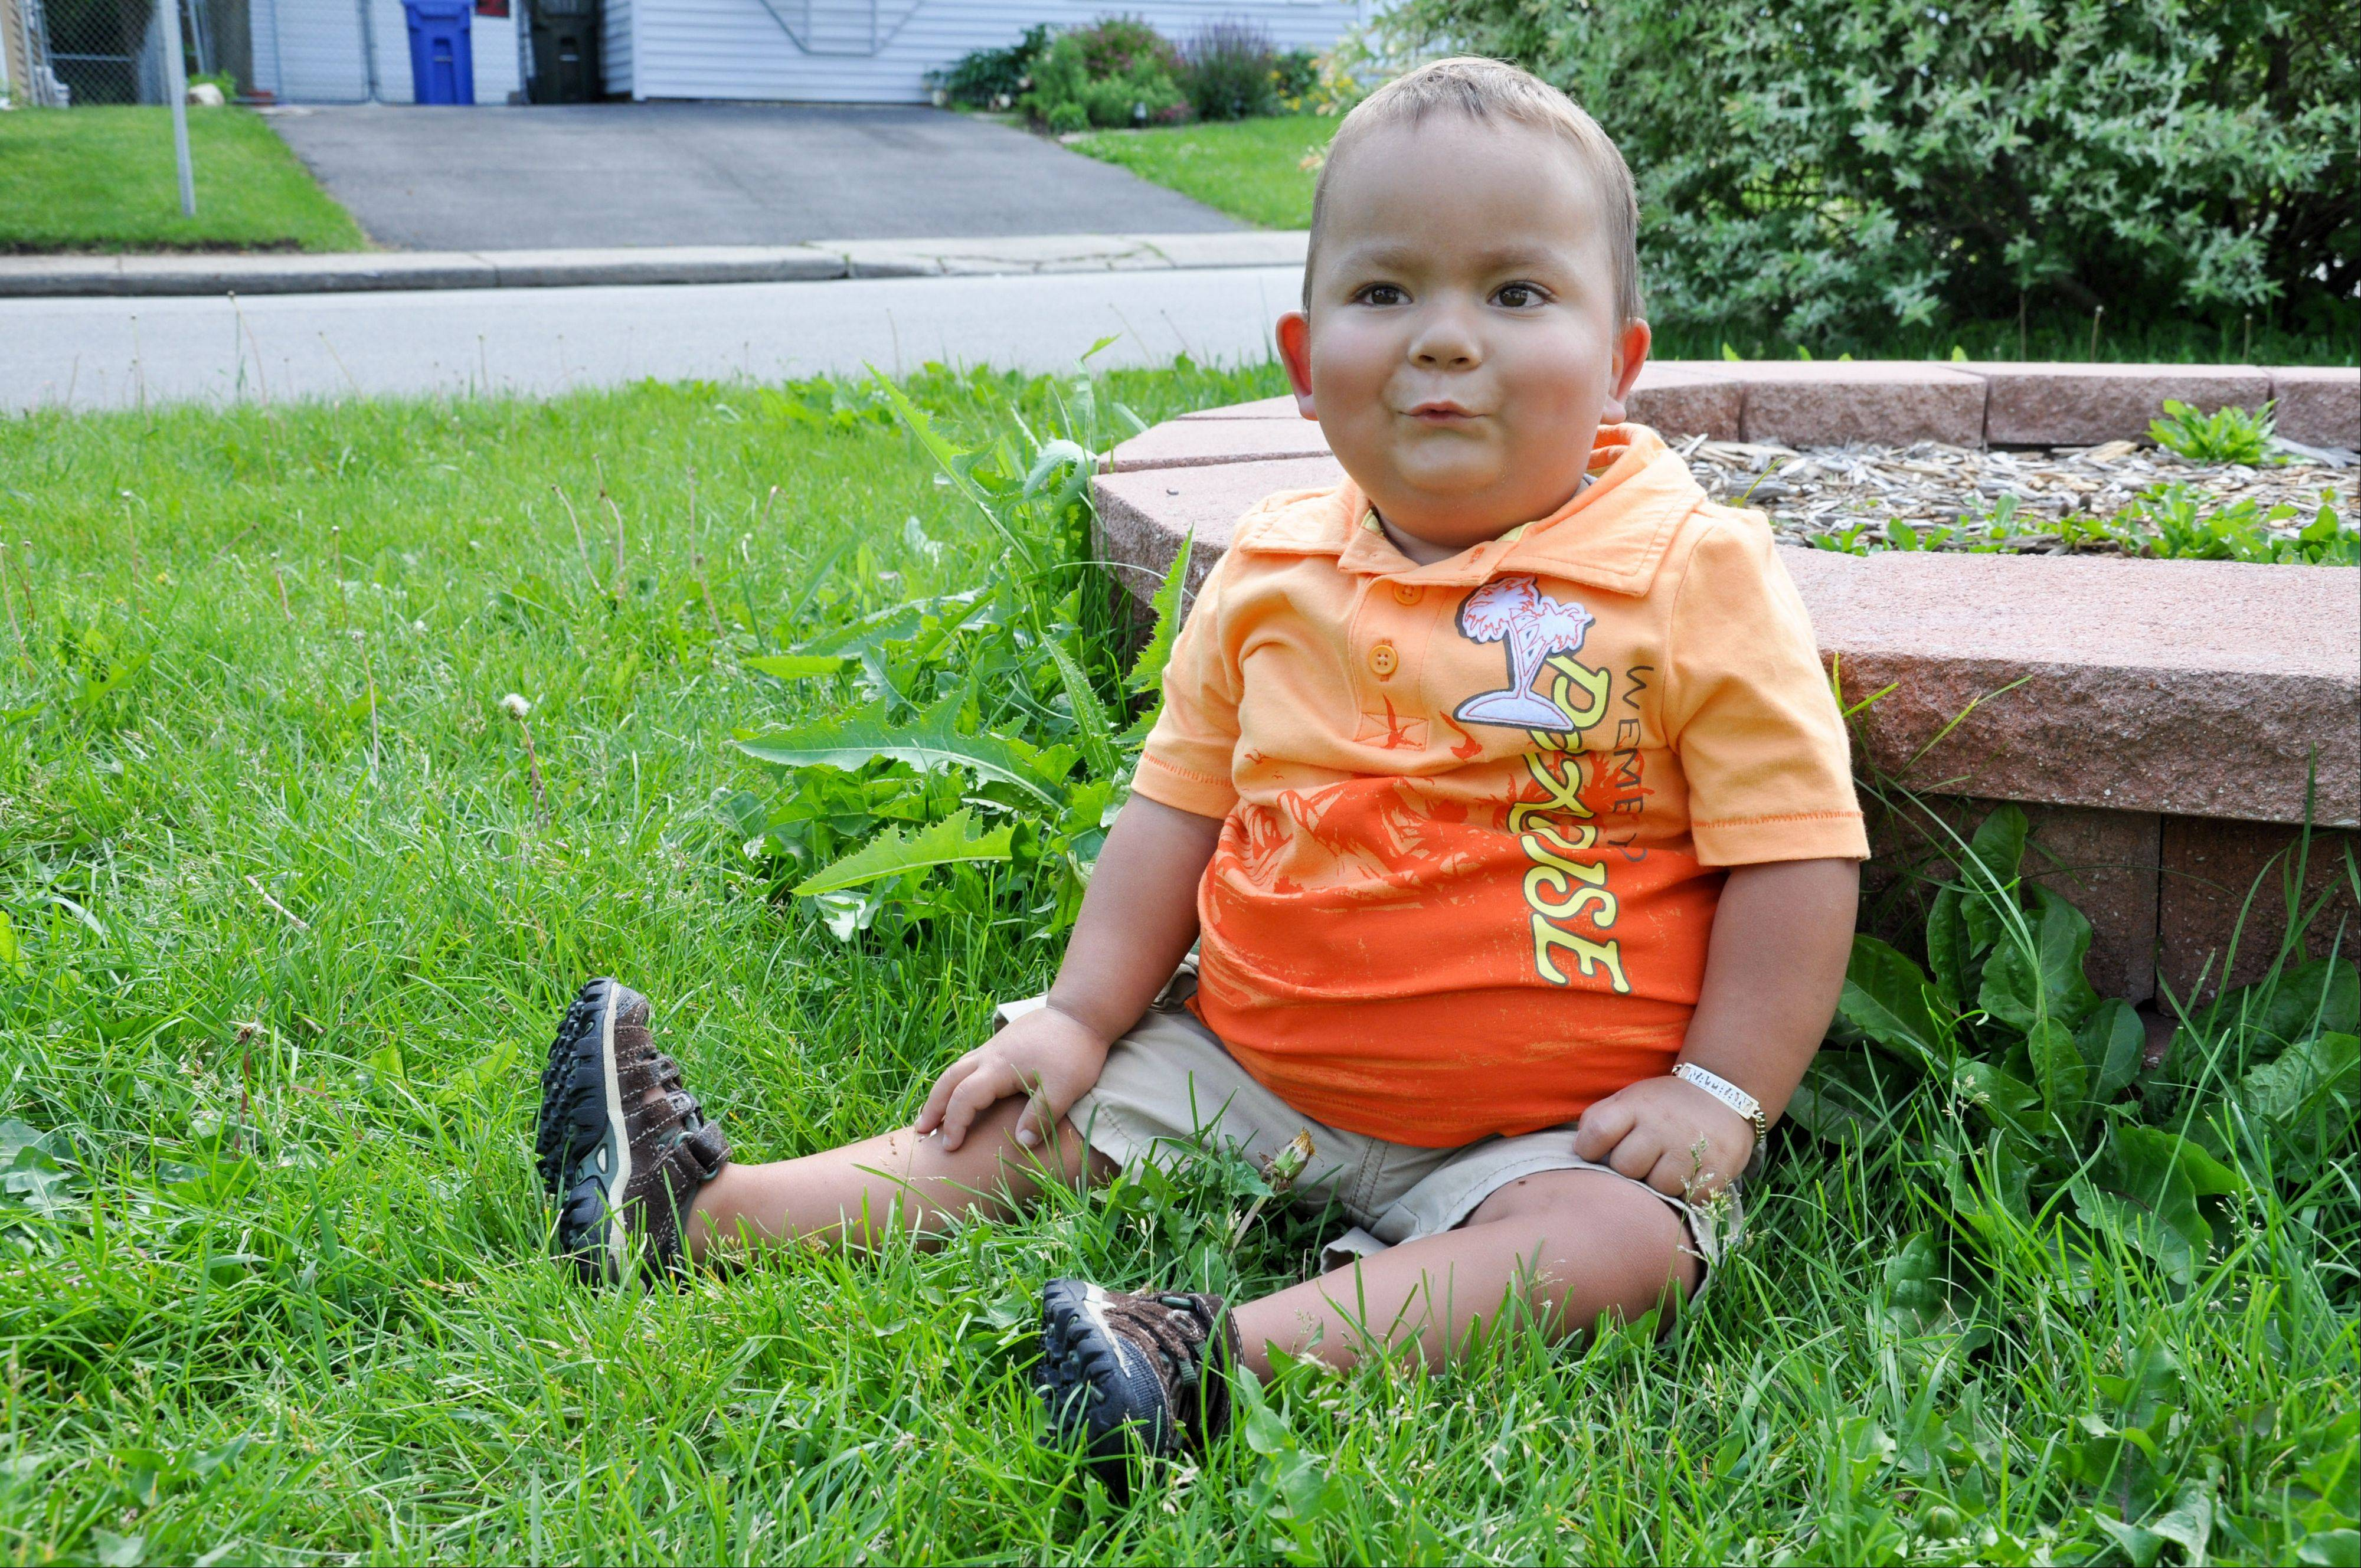 Nathan Saavedra, the 2-year-old Carpentersville boy who needs a kidney.